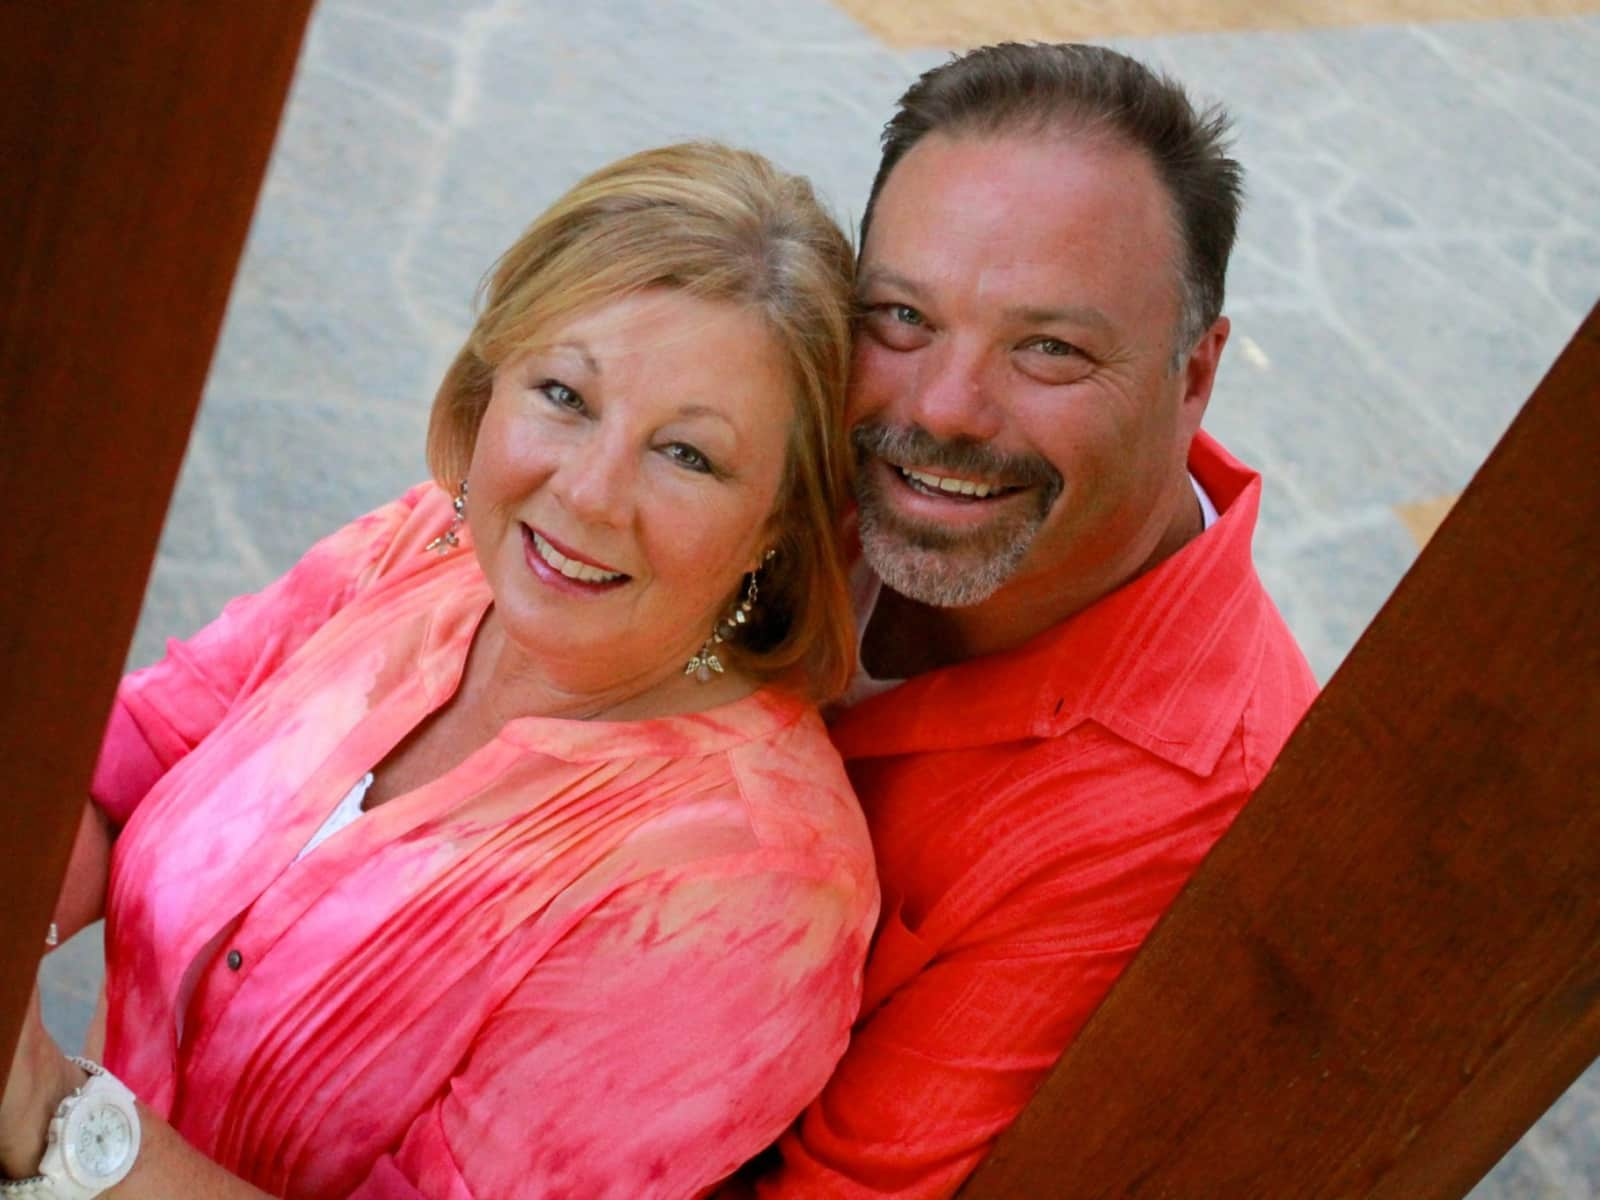 Brentlee and patti from Norman, Oklahoma, United States